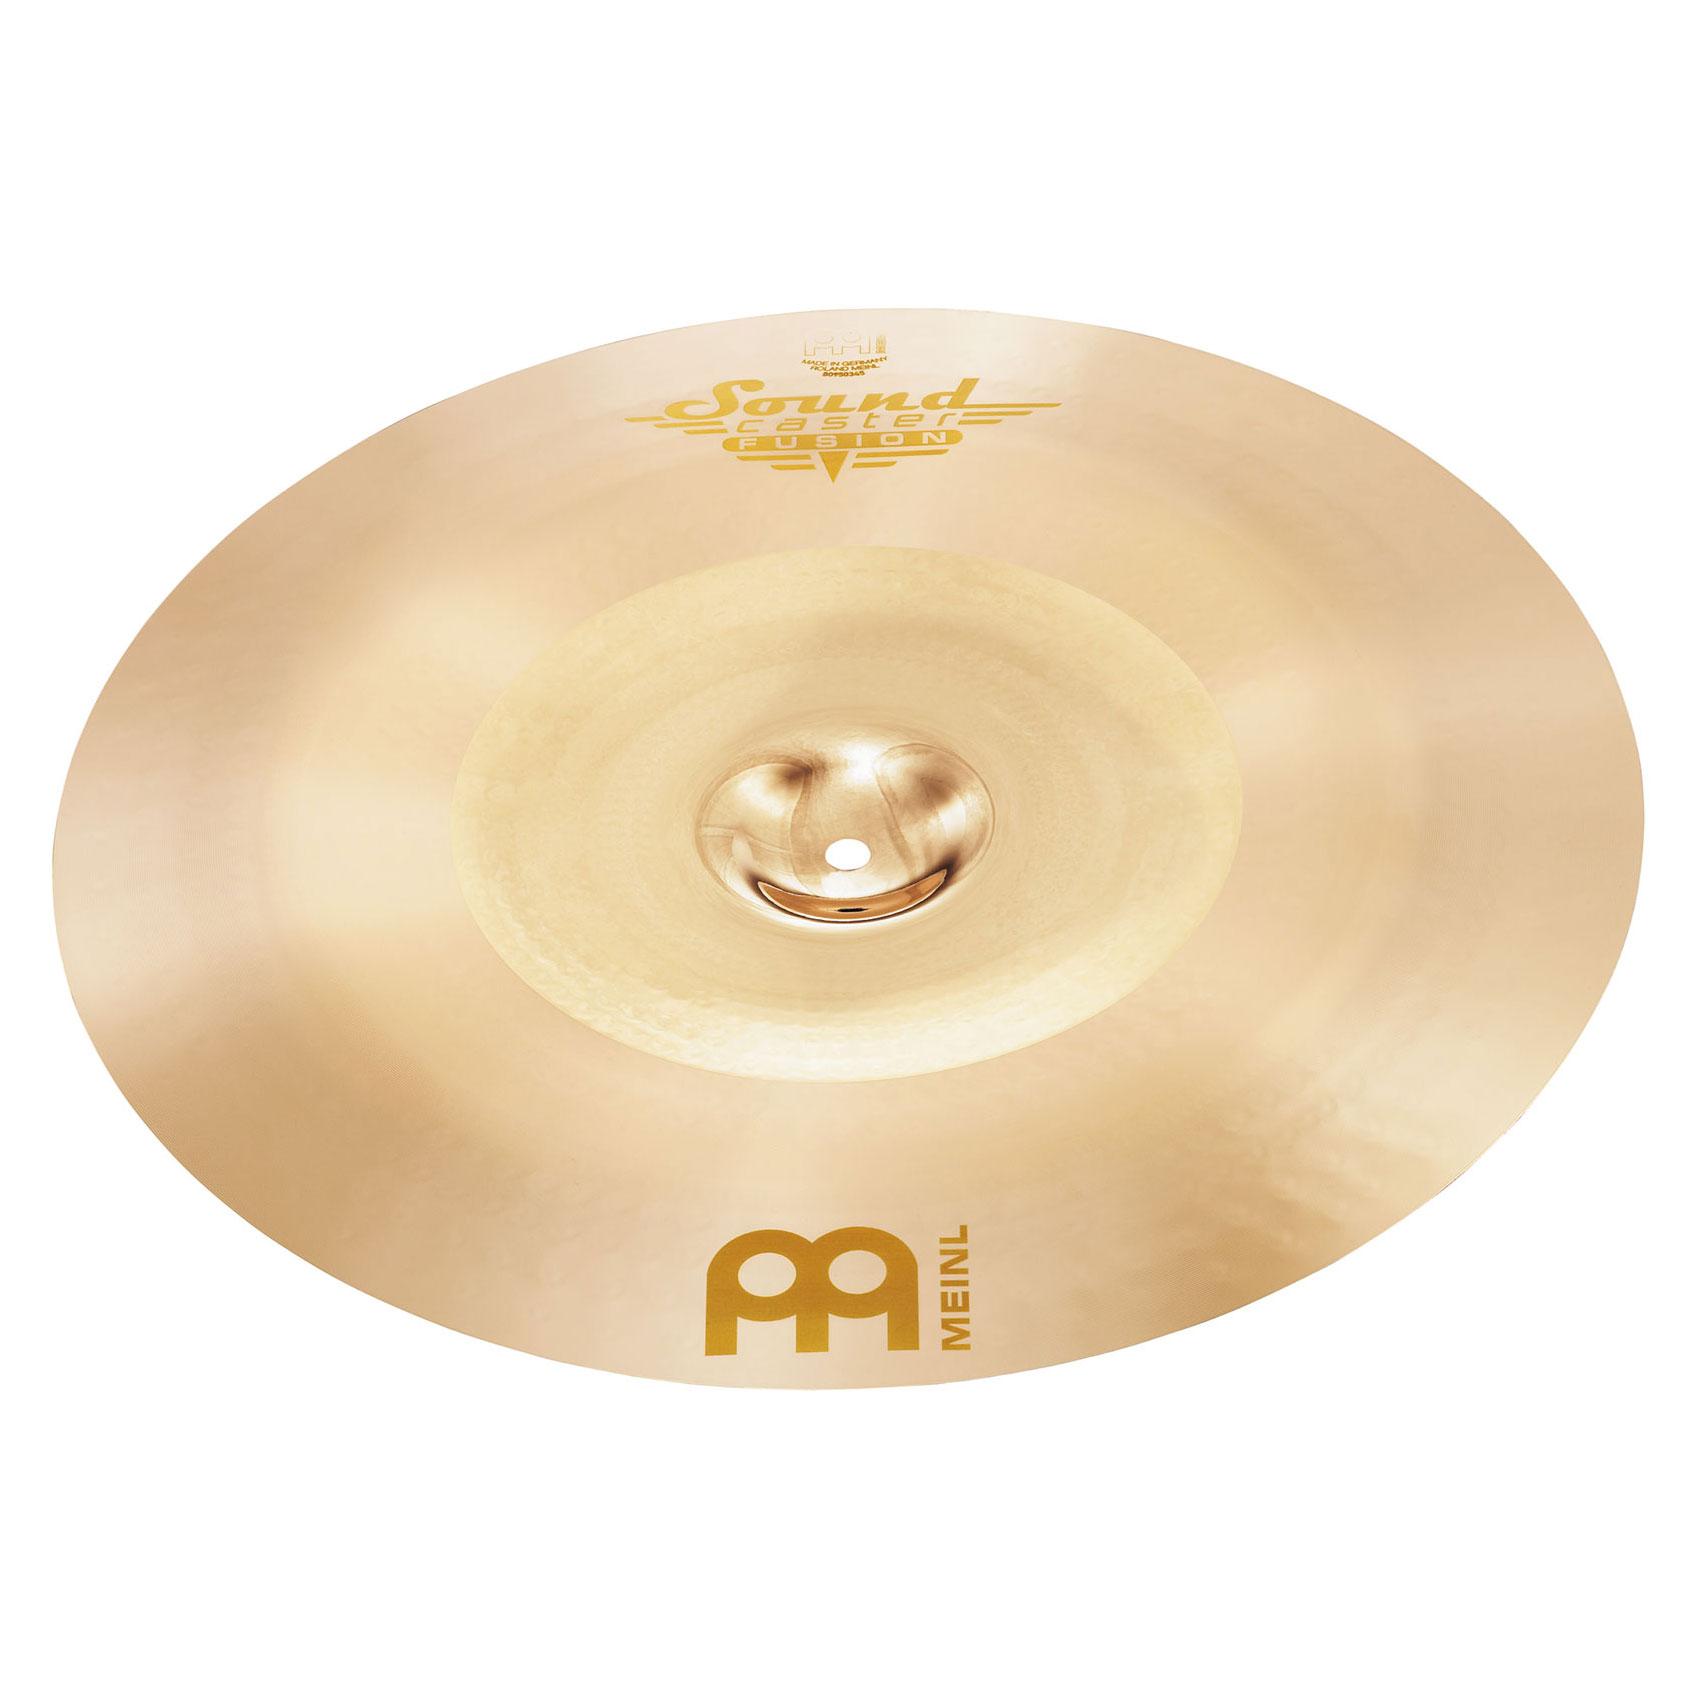 "Meinl 16"" Soundcaster Fusion China Cymbal"